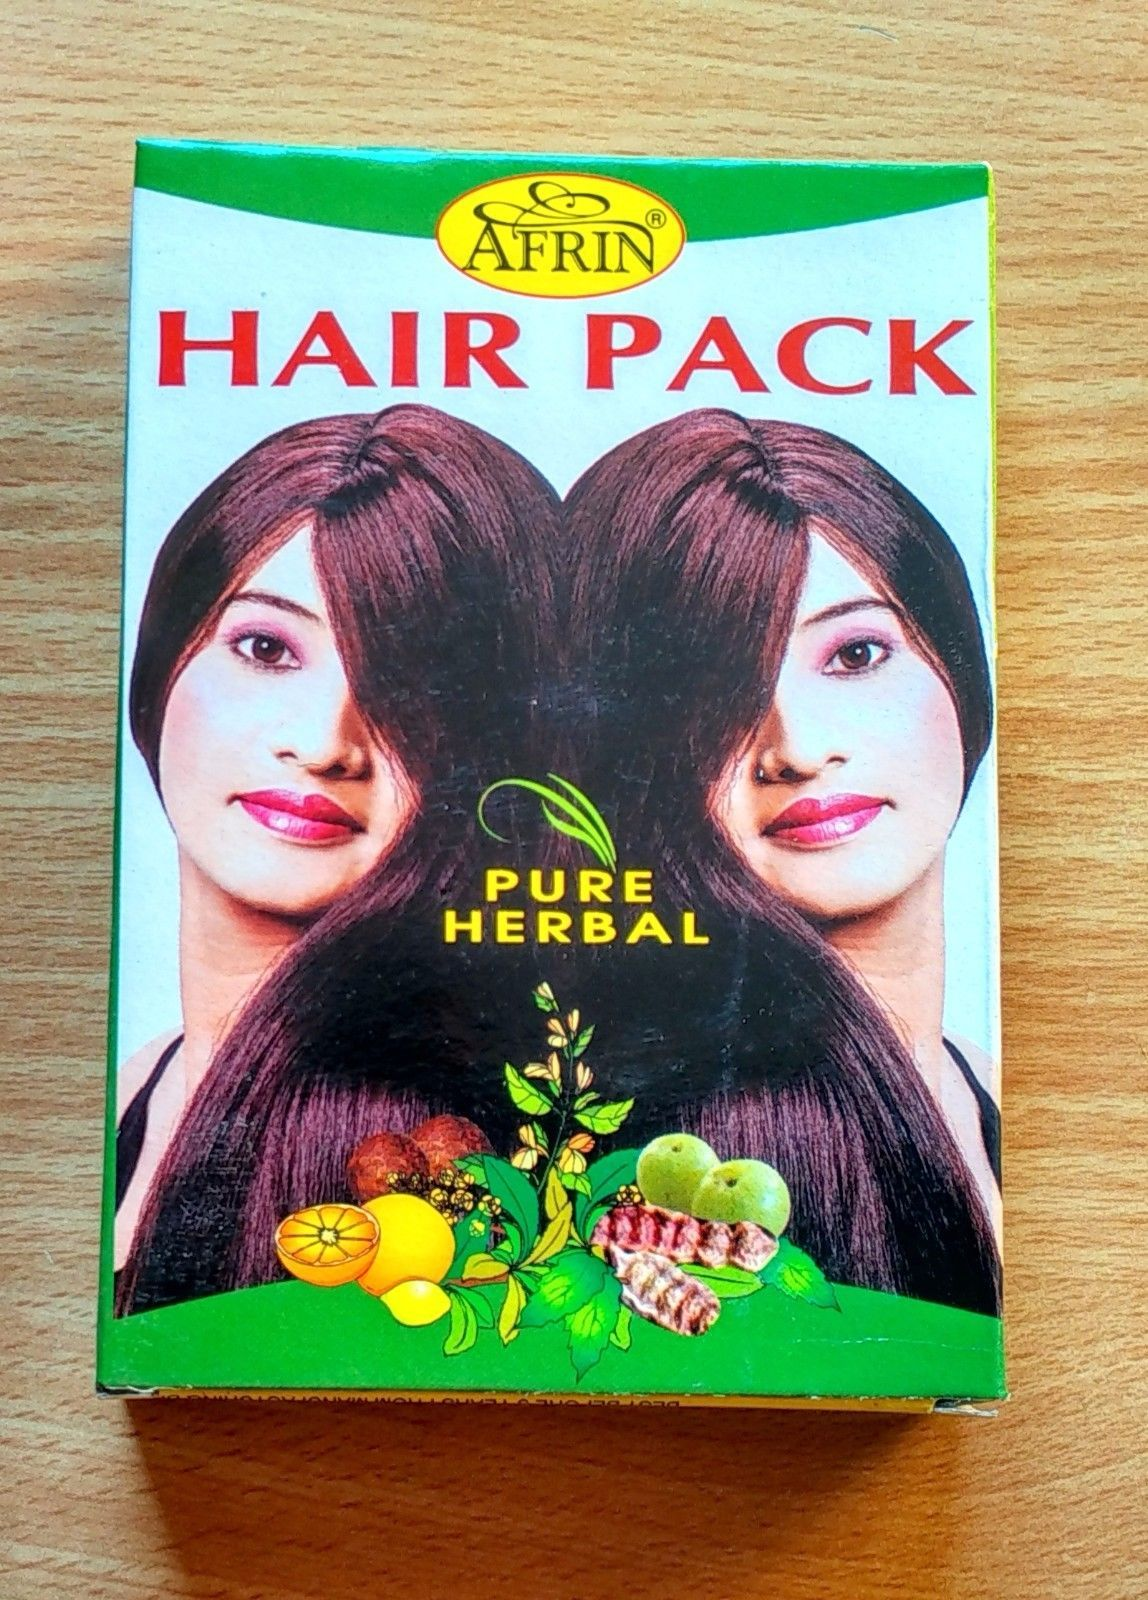 HAIR PACK PURE Herbal BY AFRIN ALL IN 1 Gift of Ayurveda - Healthy food for Hair